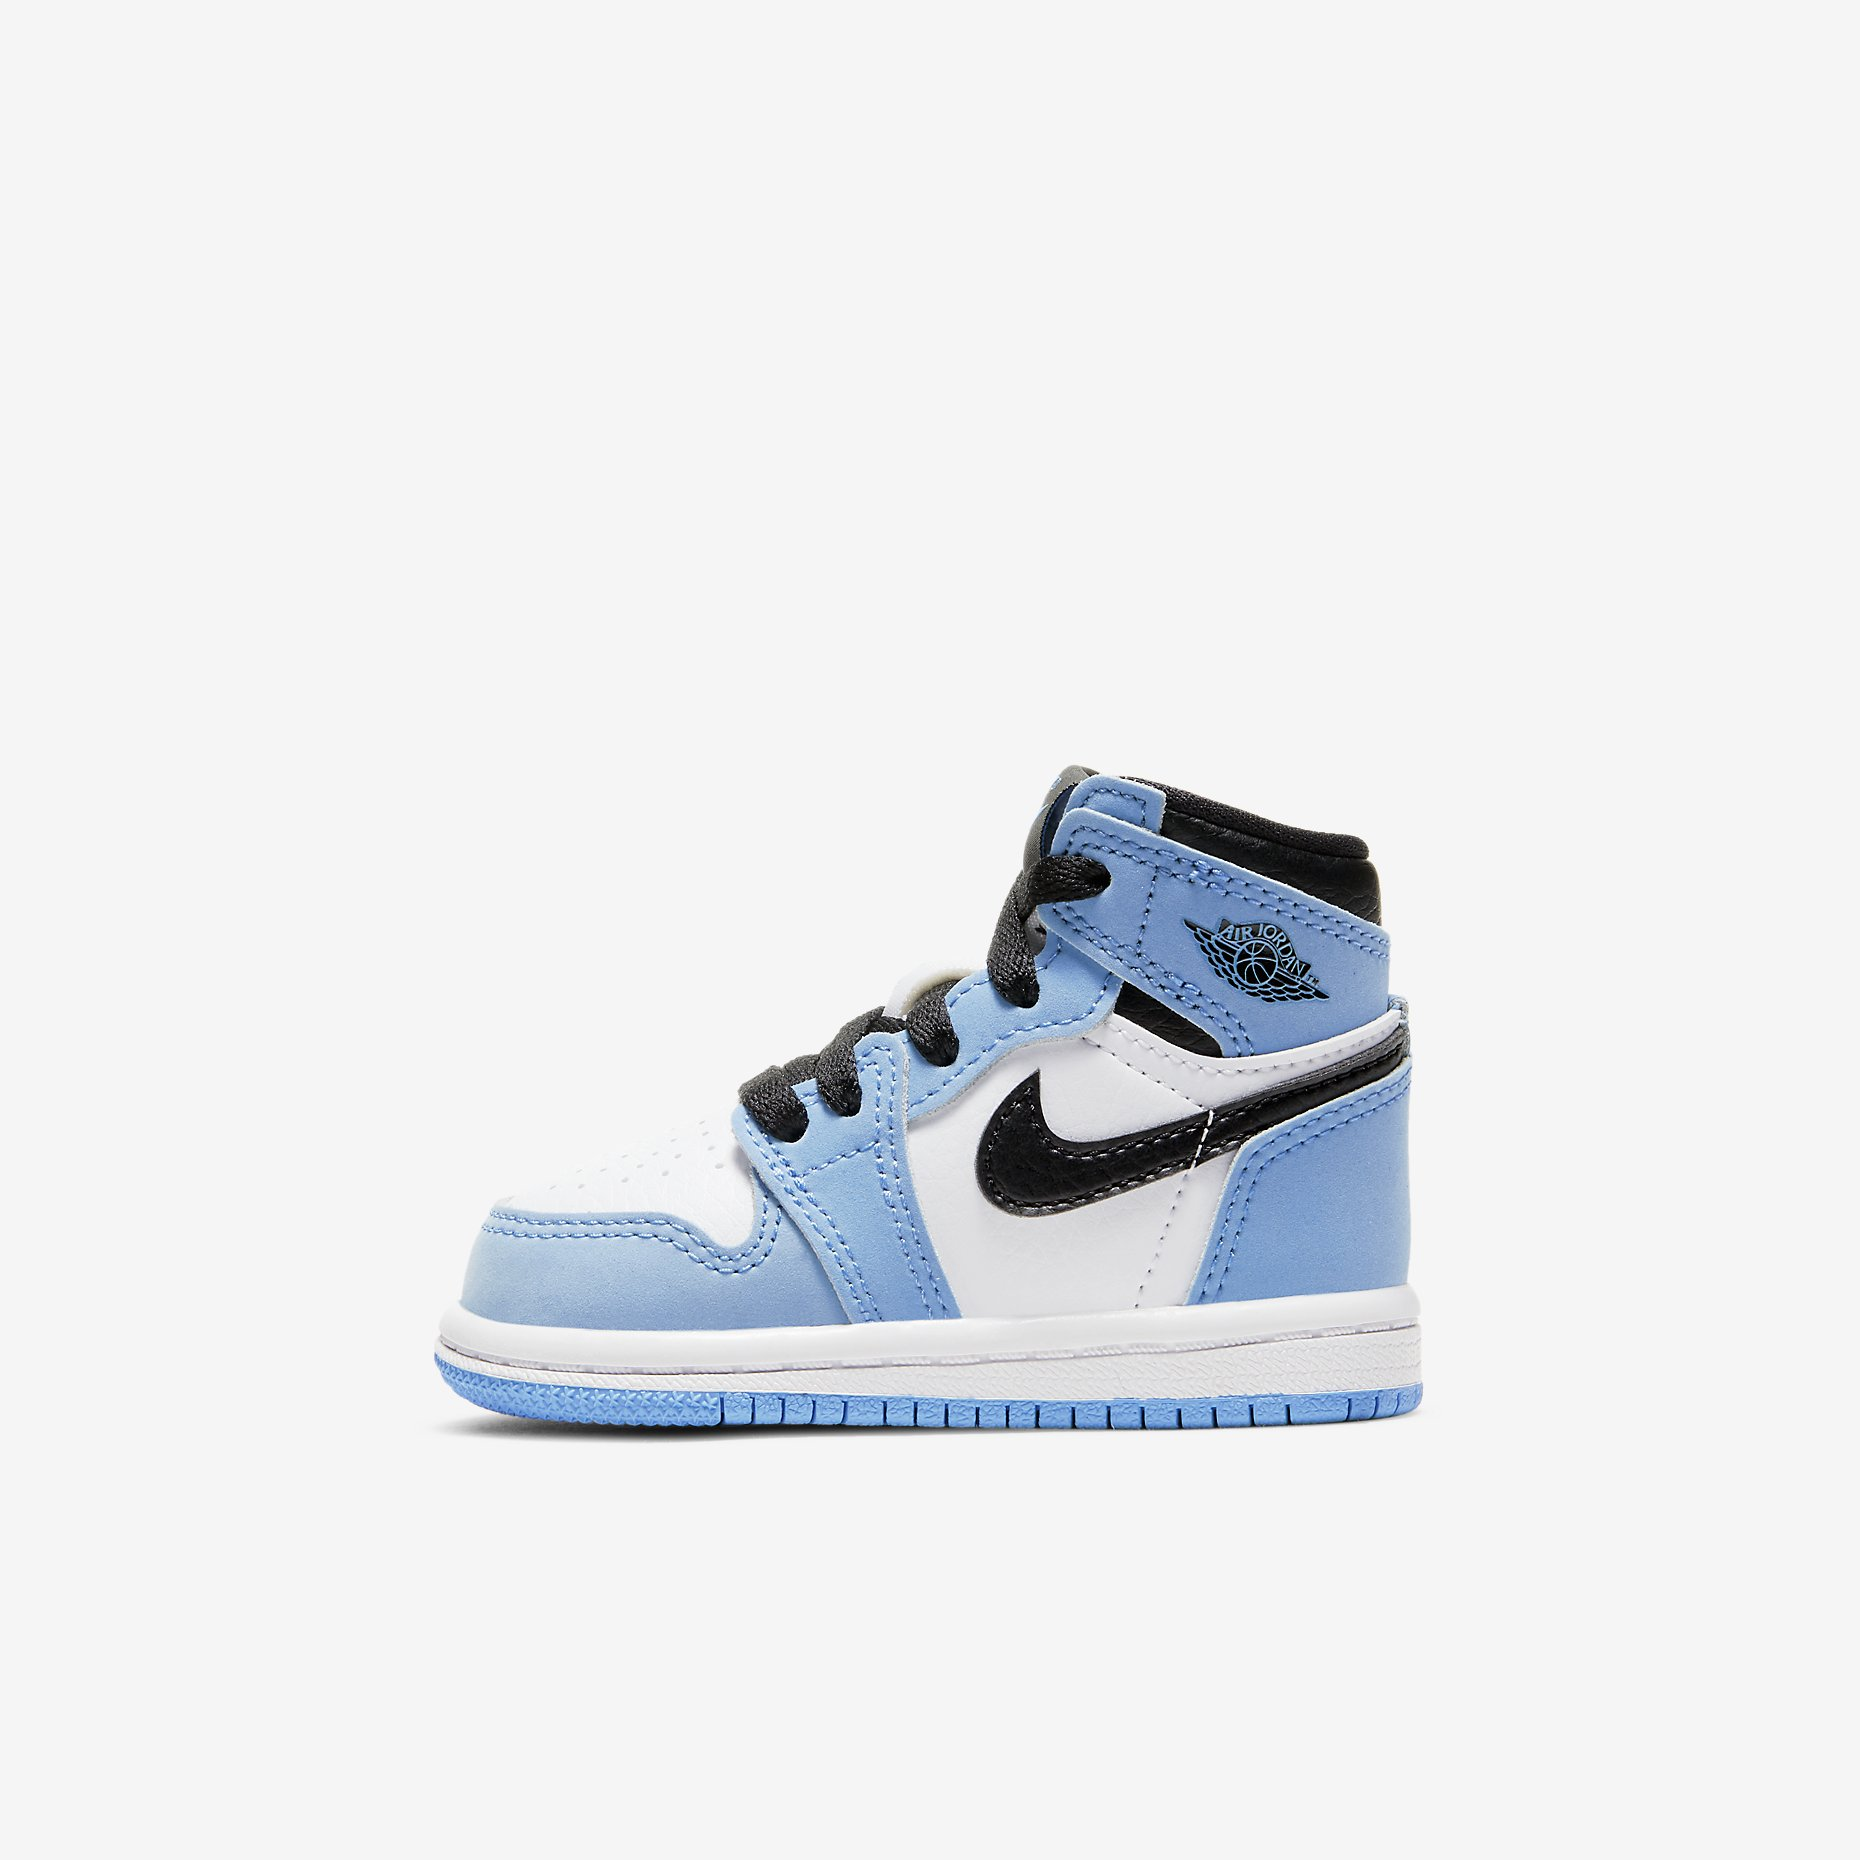 Air Jordan 1 Retro High OG TD 'University Blue'}